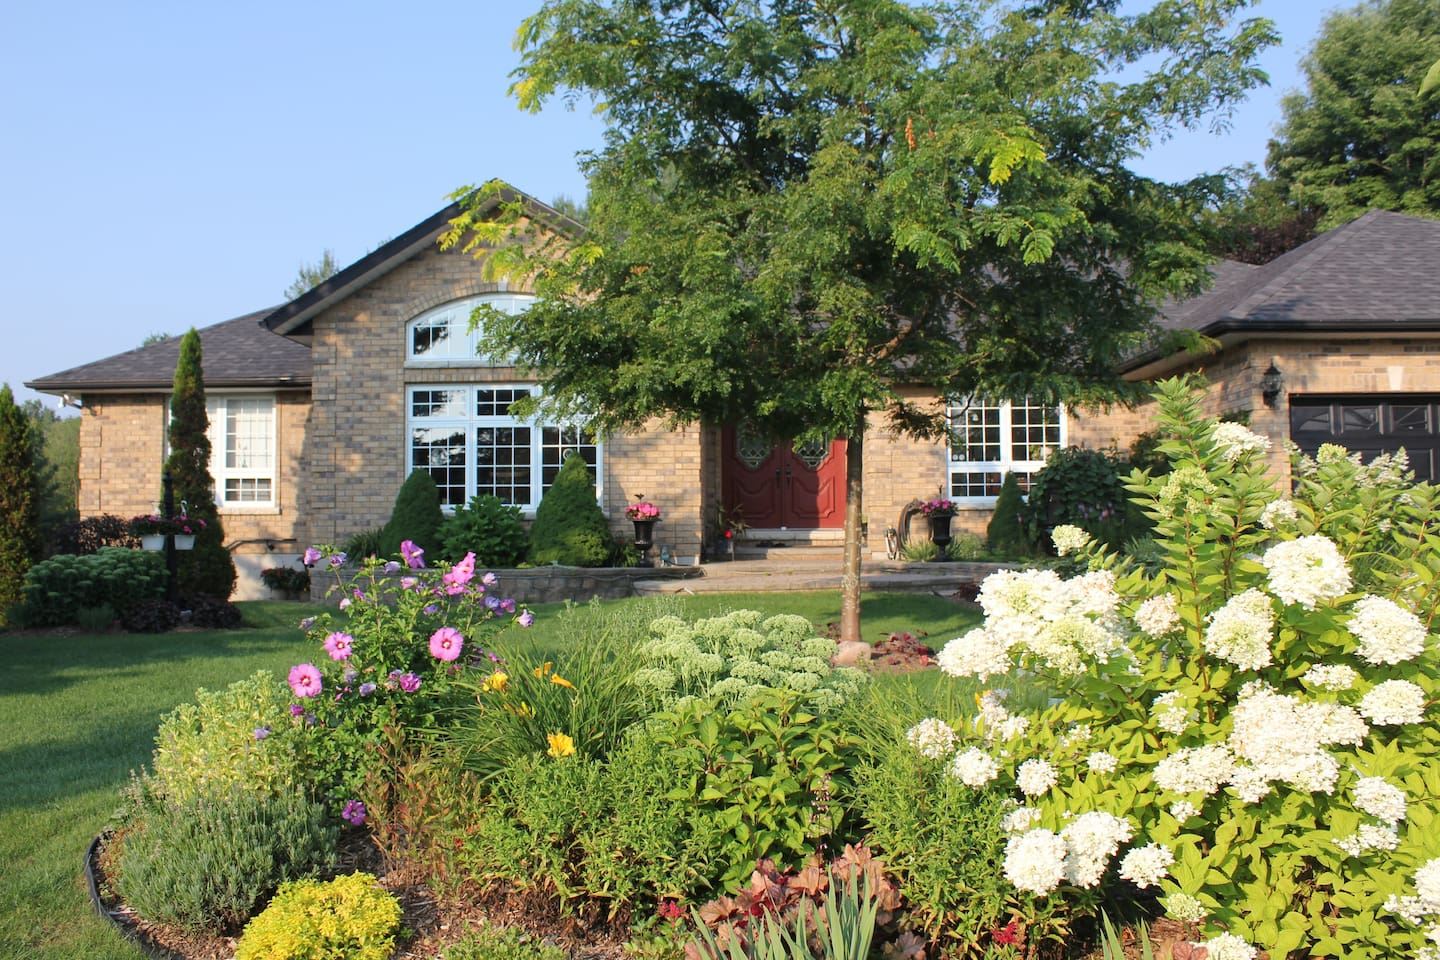 Roadside view of Woodland Gardens Bed and Breakfast.